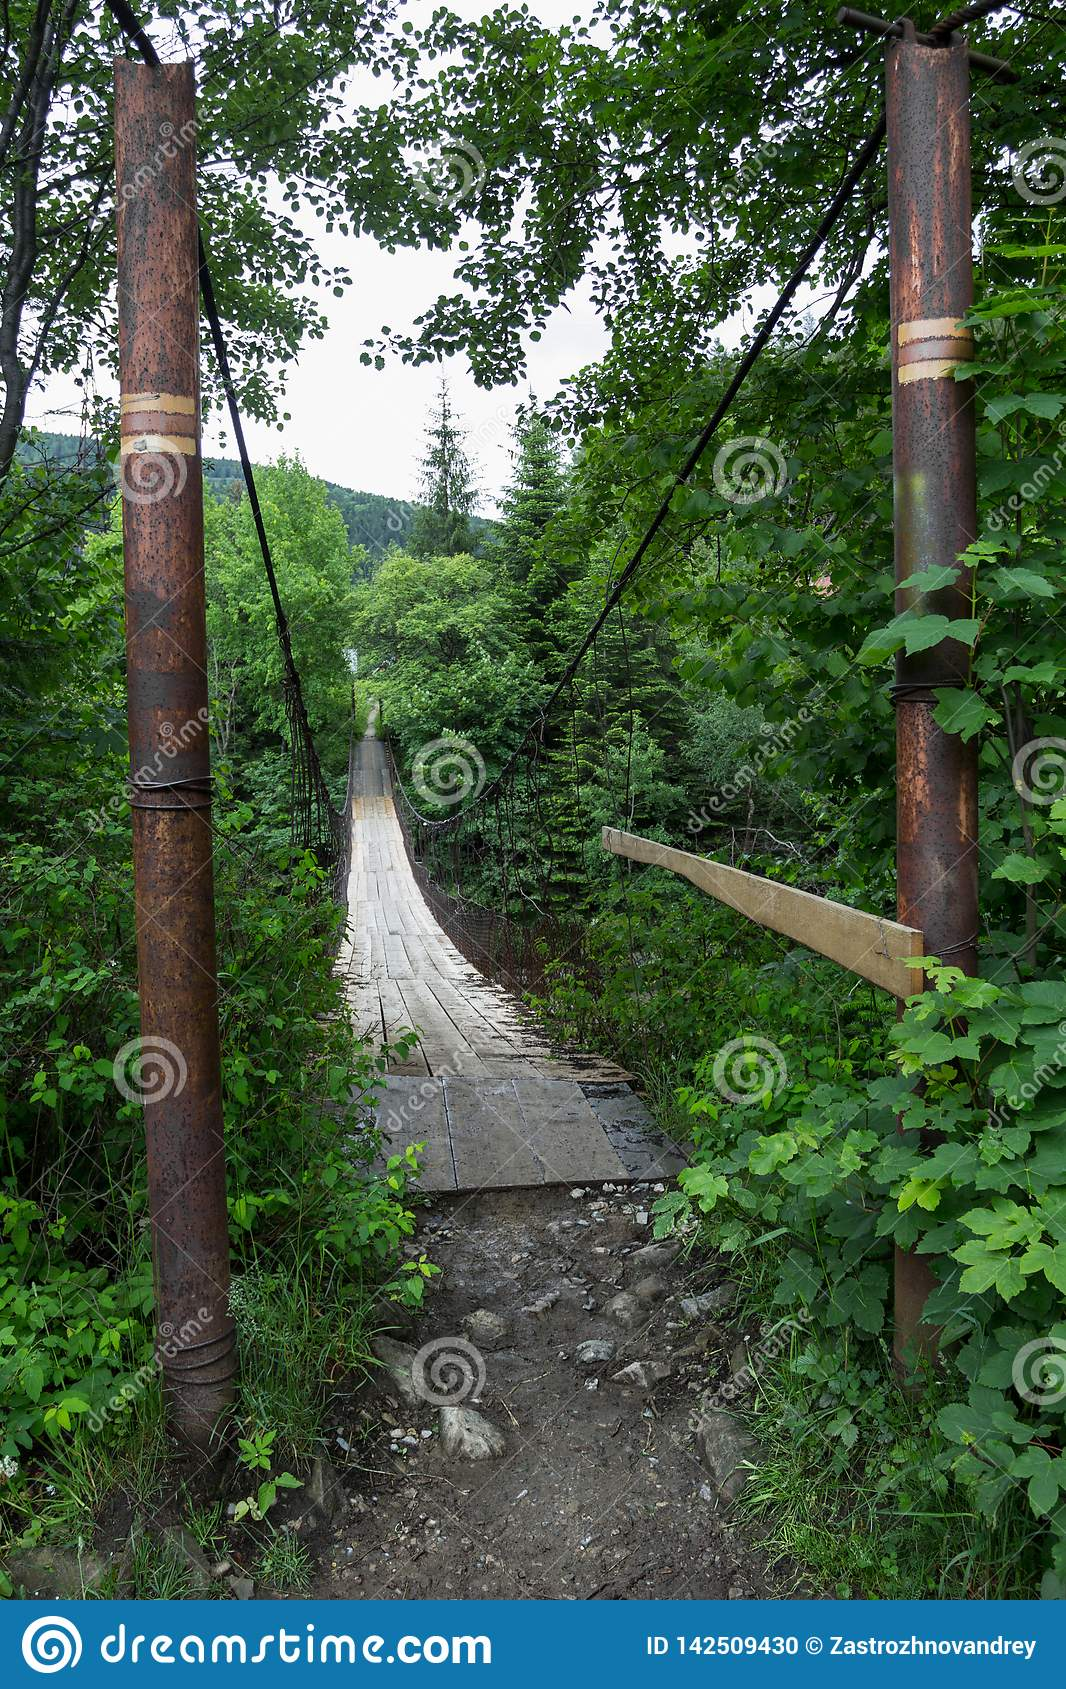 Entrance to the old suspension bridge over the river in the forest